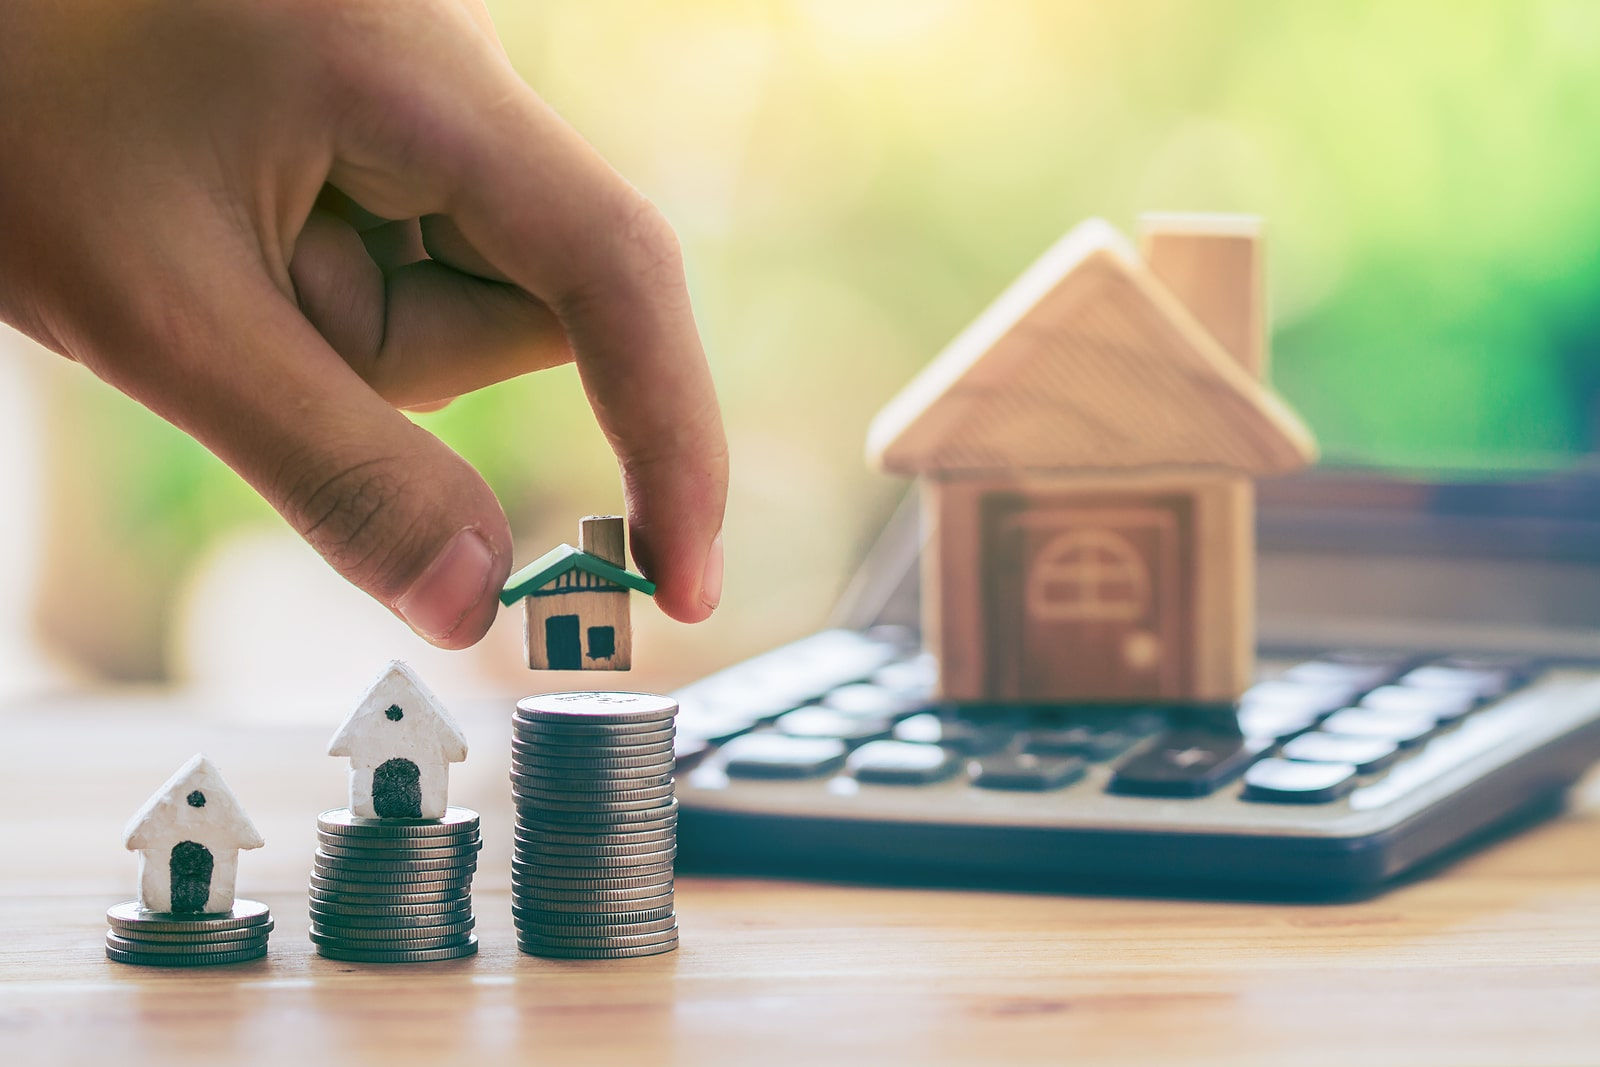 bigstock-House-On-Coins-And-House-Put-O-357127139-min